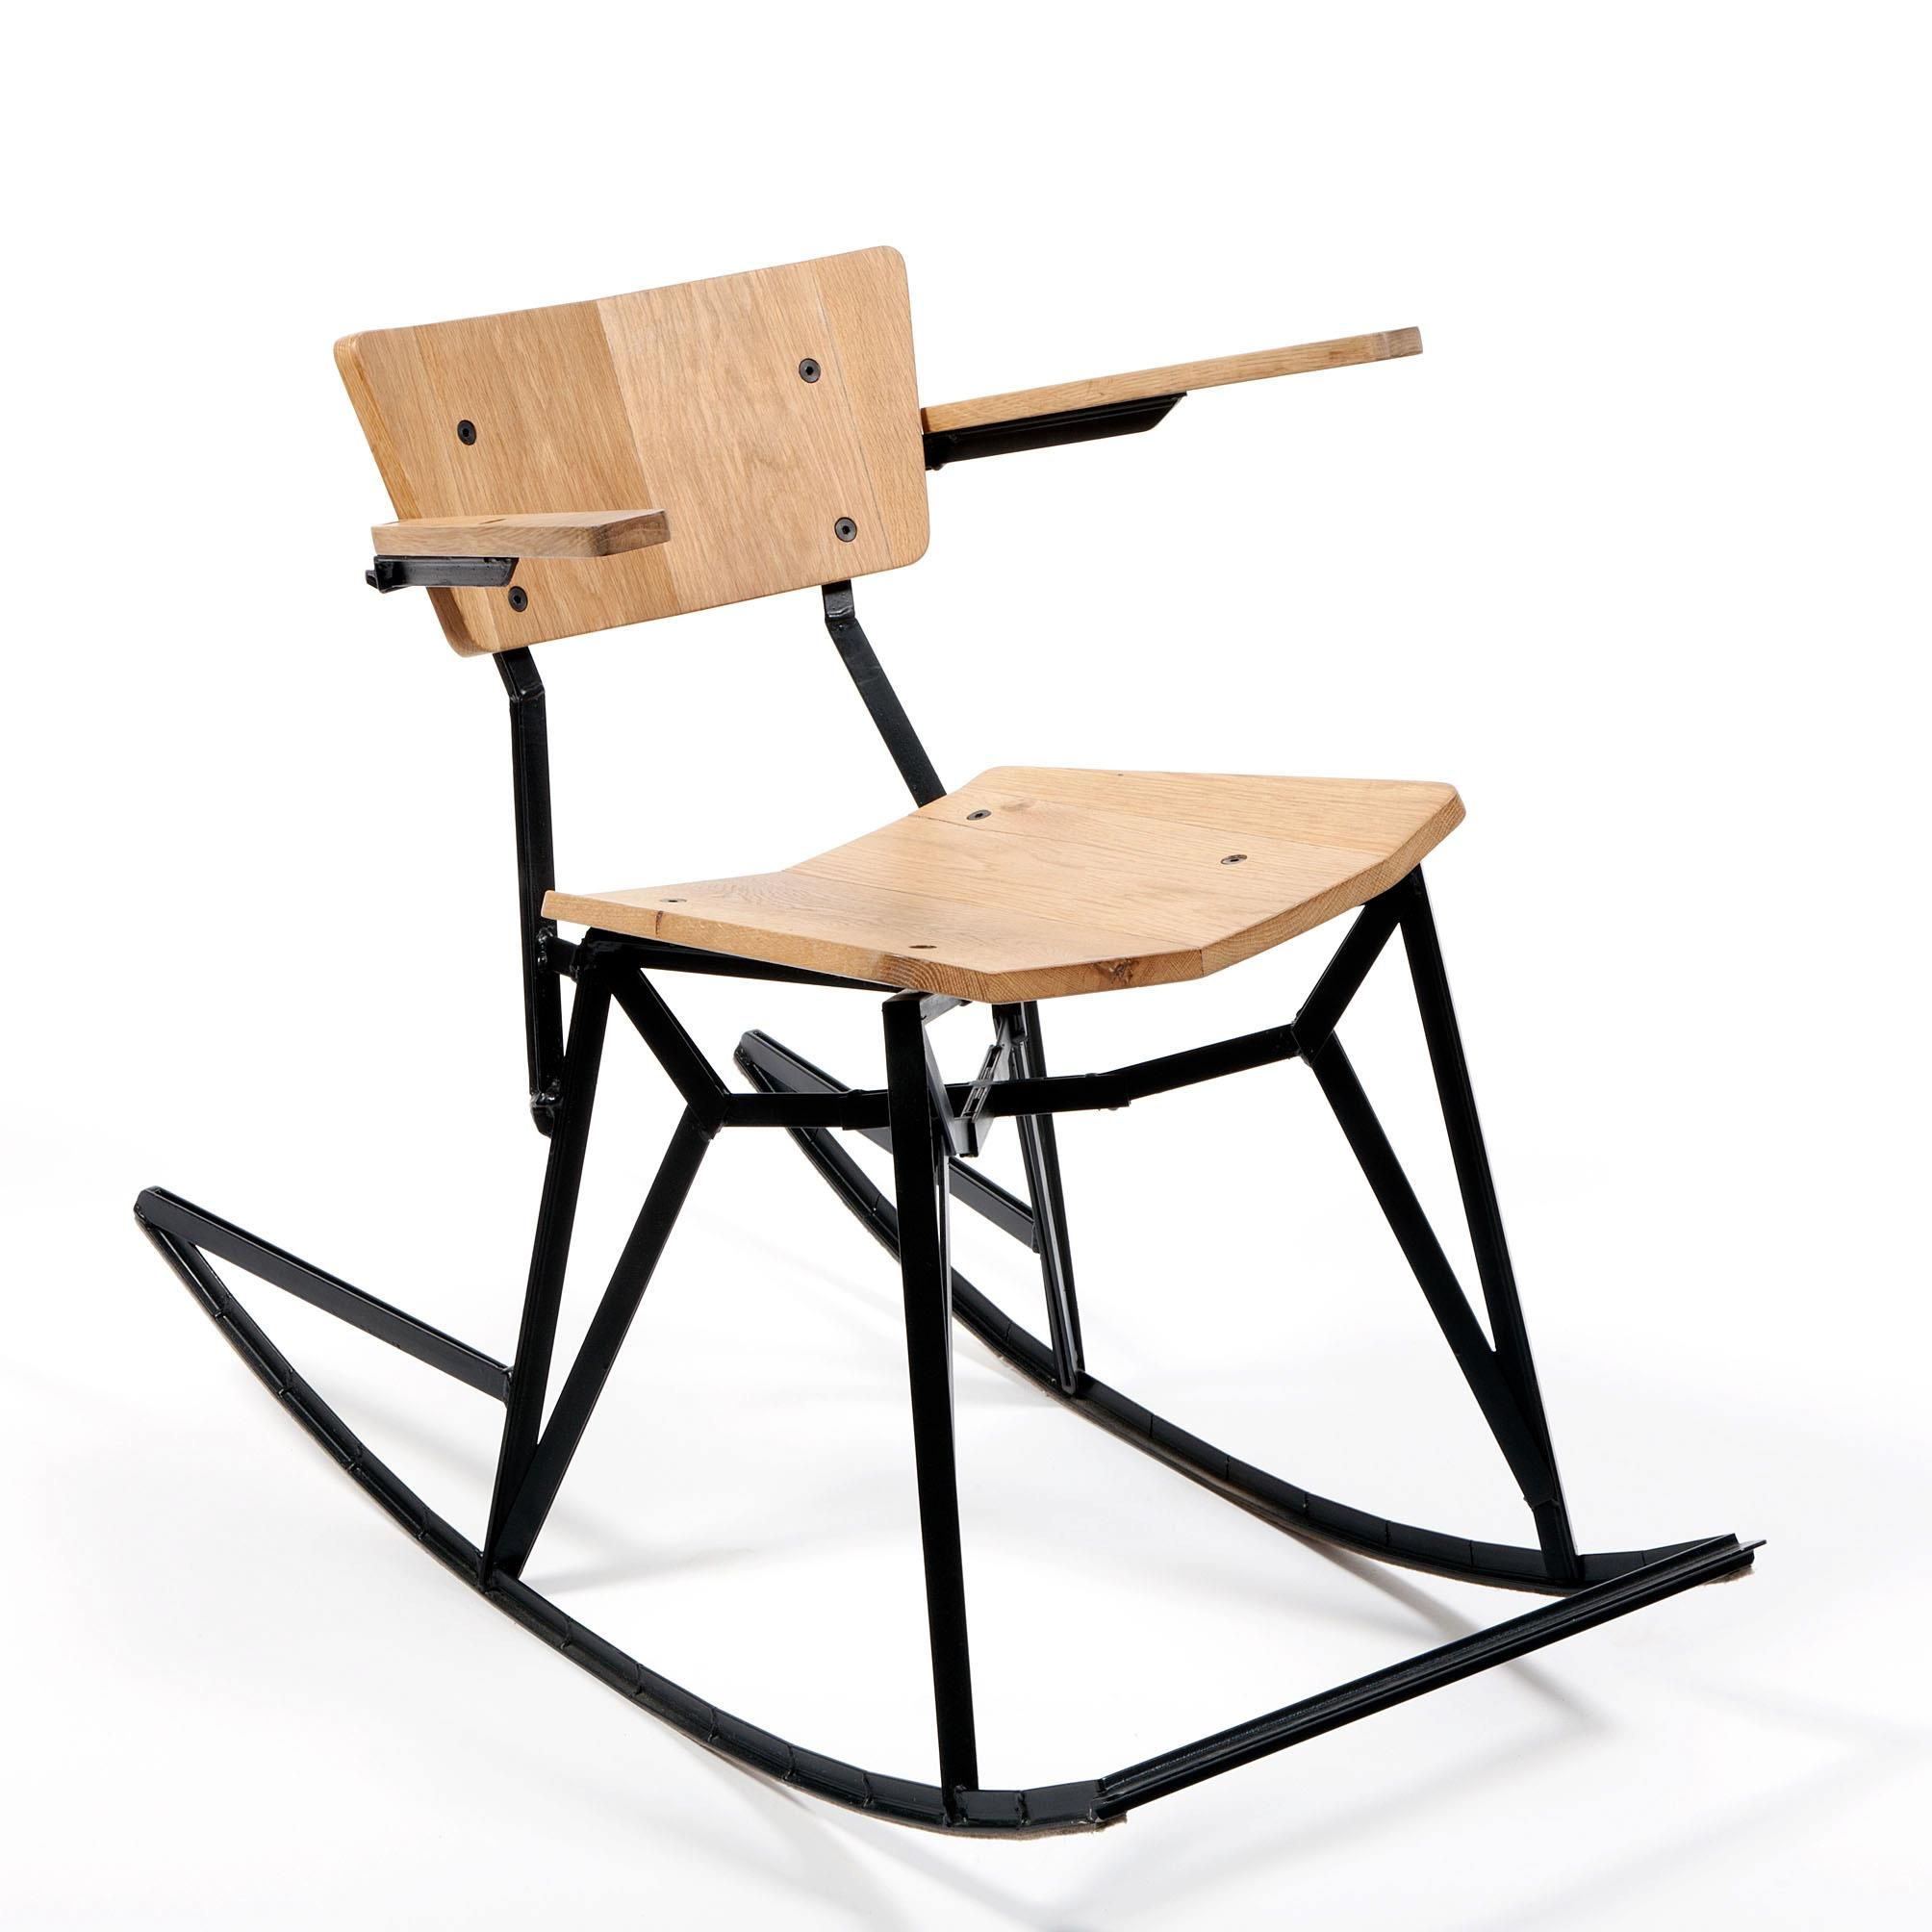 chair cba steel round table for 6 chairs paul heijnen strip rocking 2012 chaise à